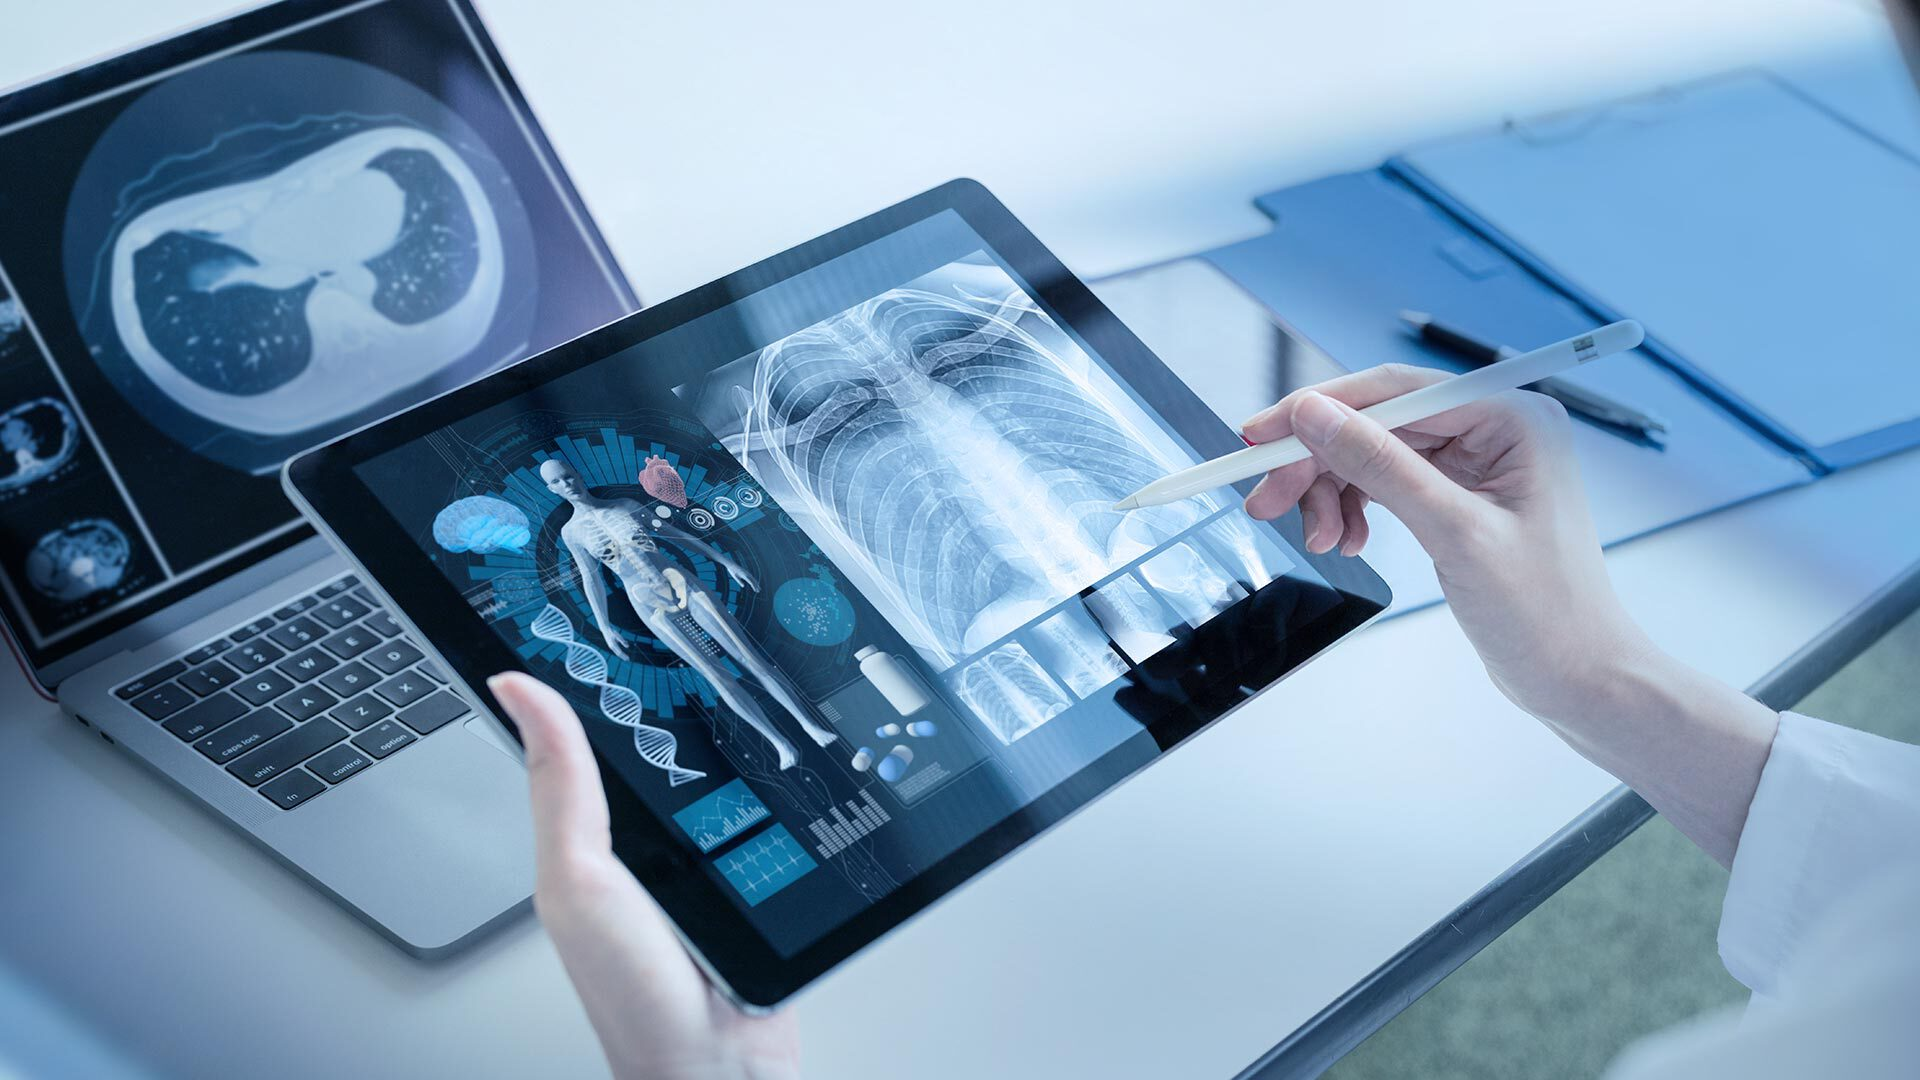 Medical is holding a Tablet-Computer which shows X-ray images